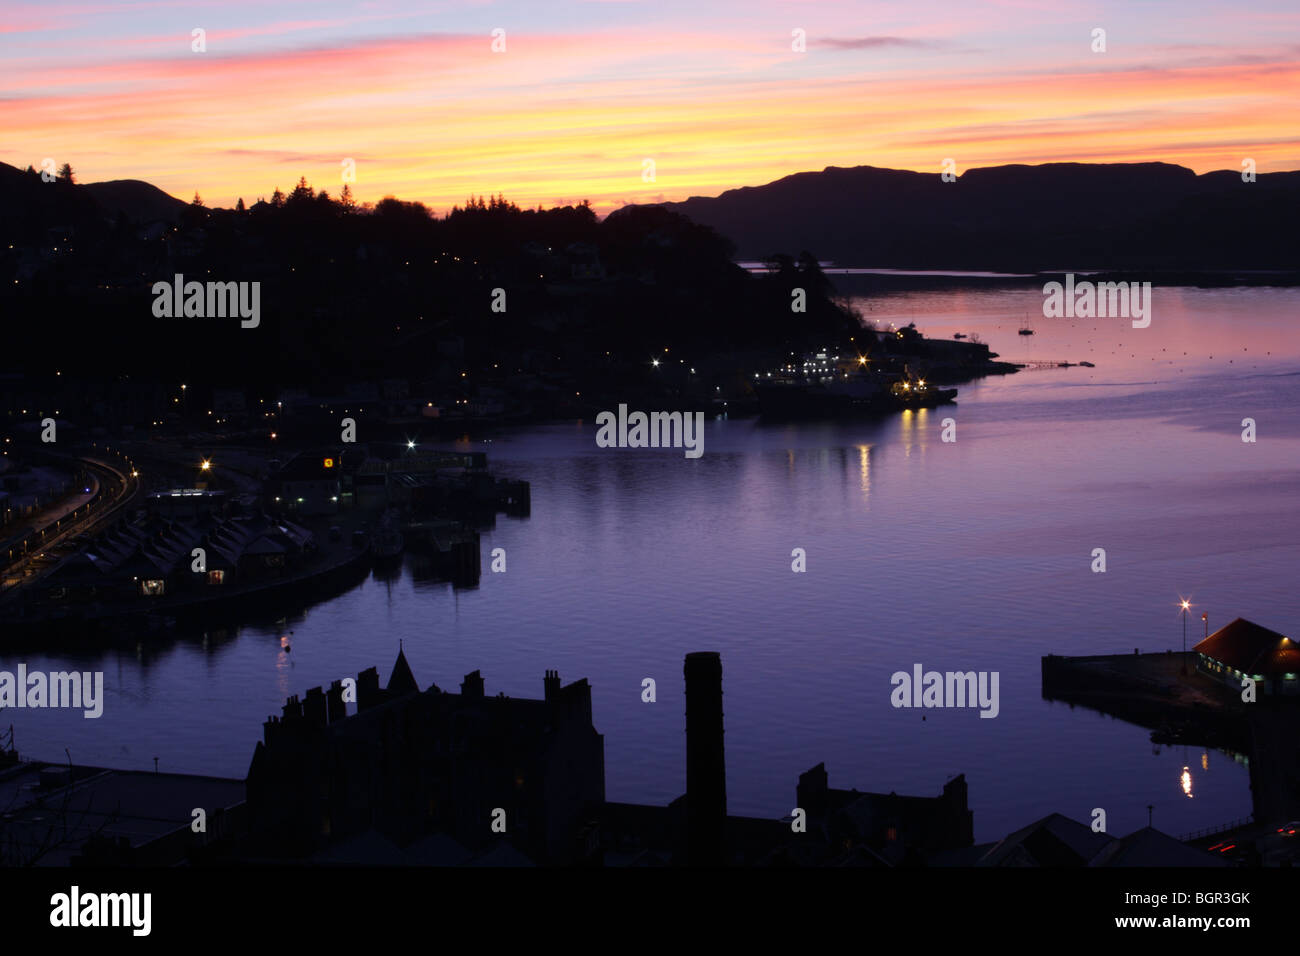 Sunset over Oban Harbor, Oban (Argyll, Scotland) view from McCaig's Towet Stock Photo